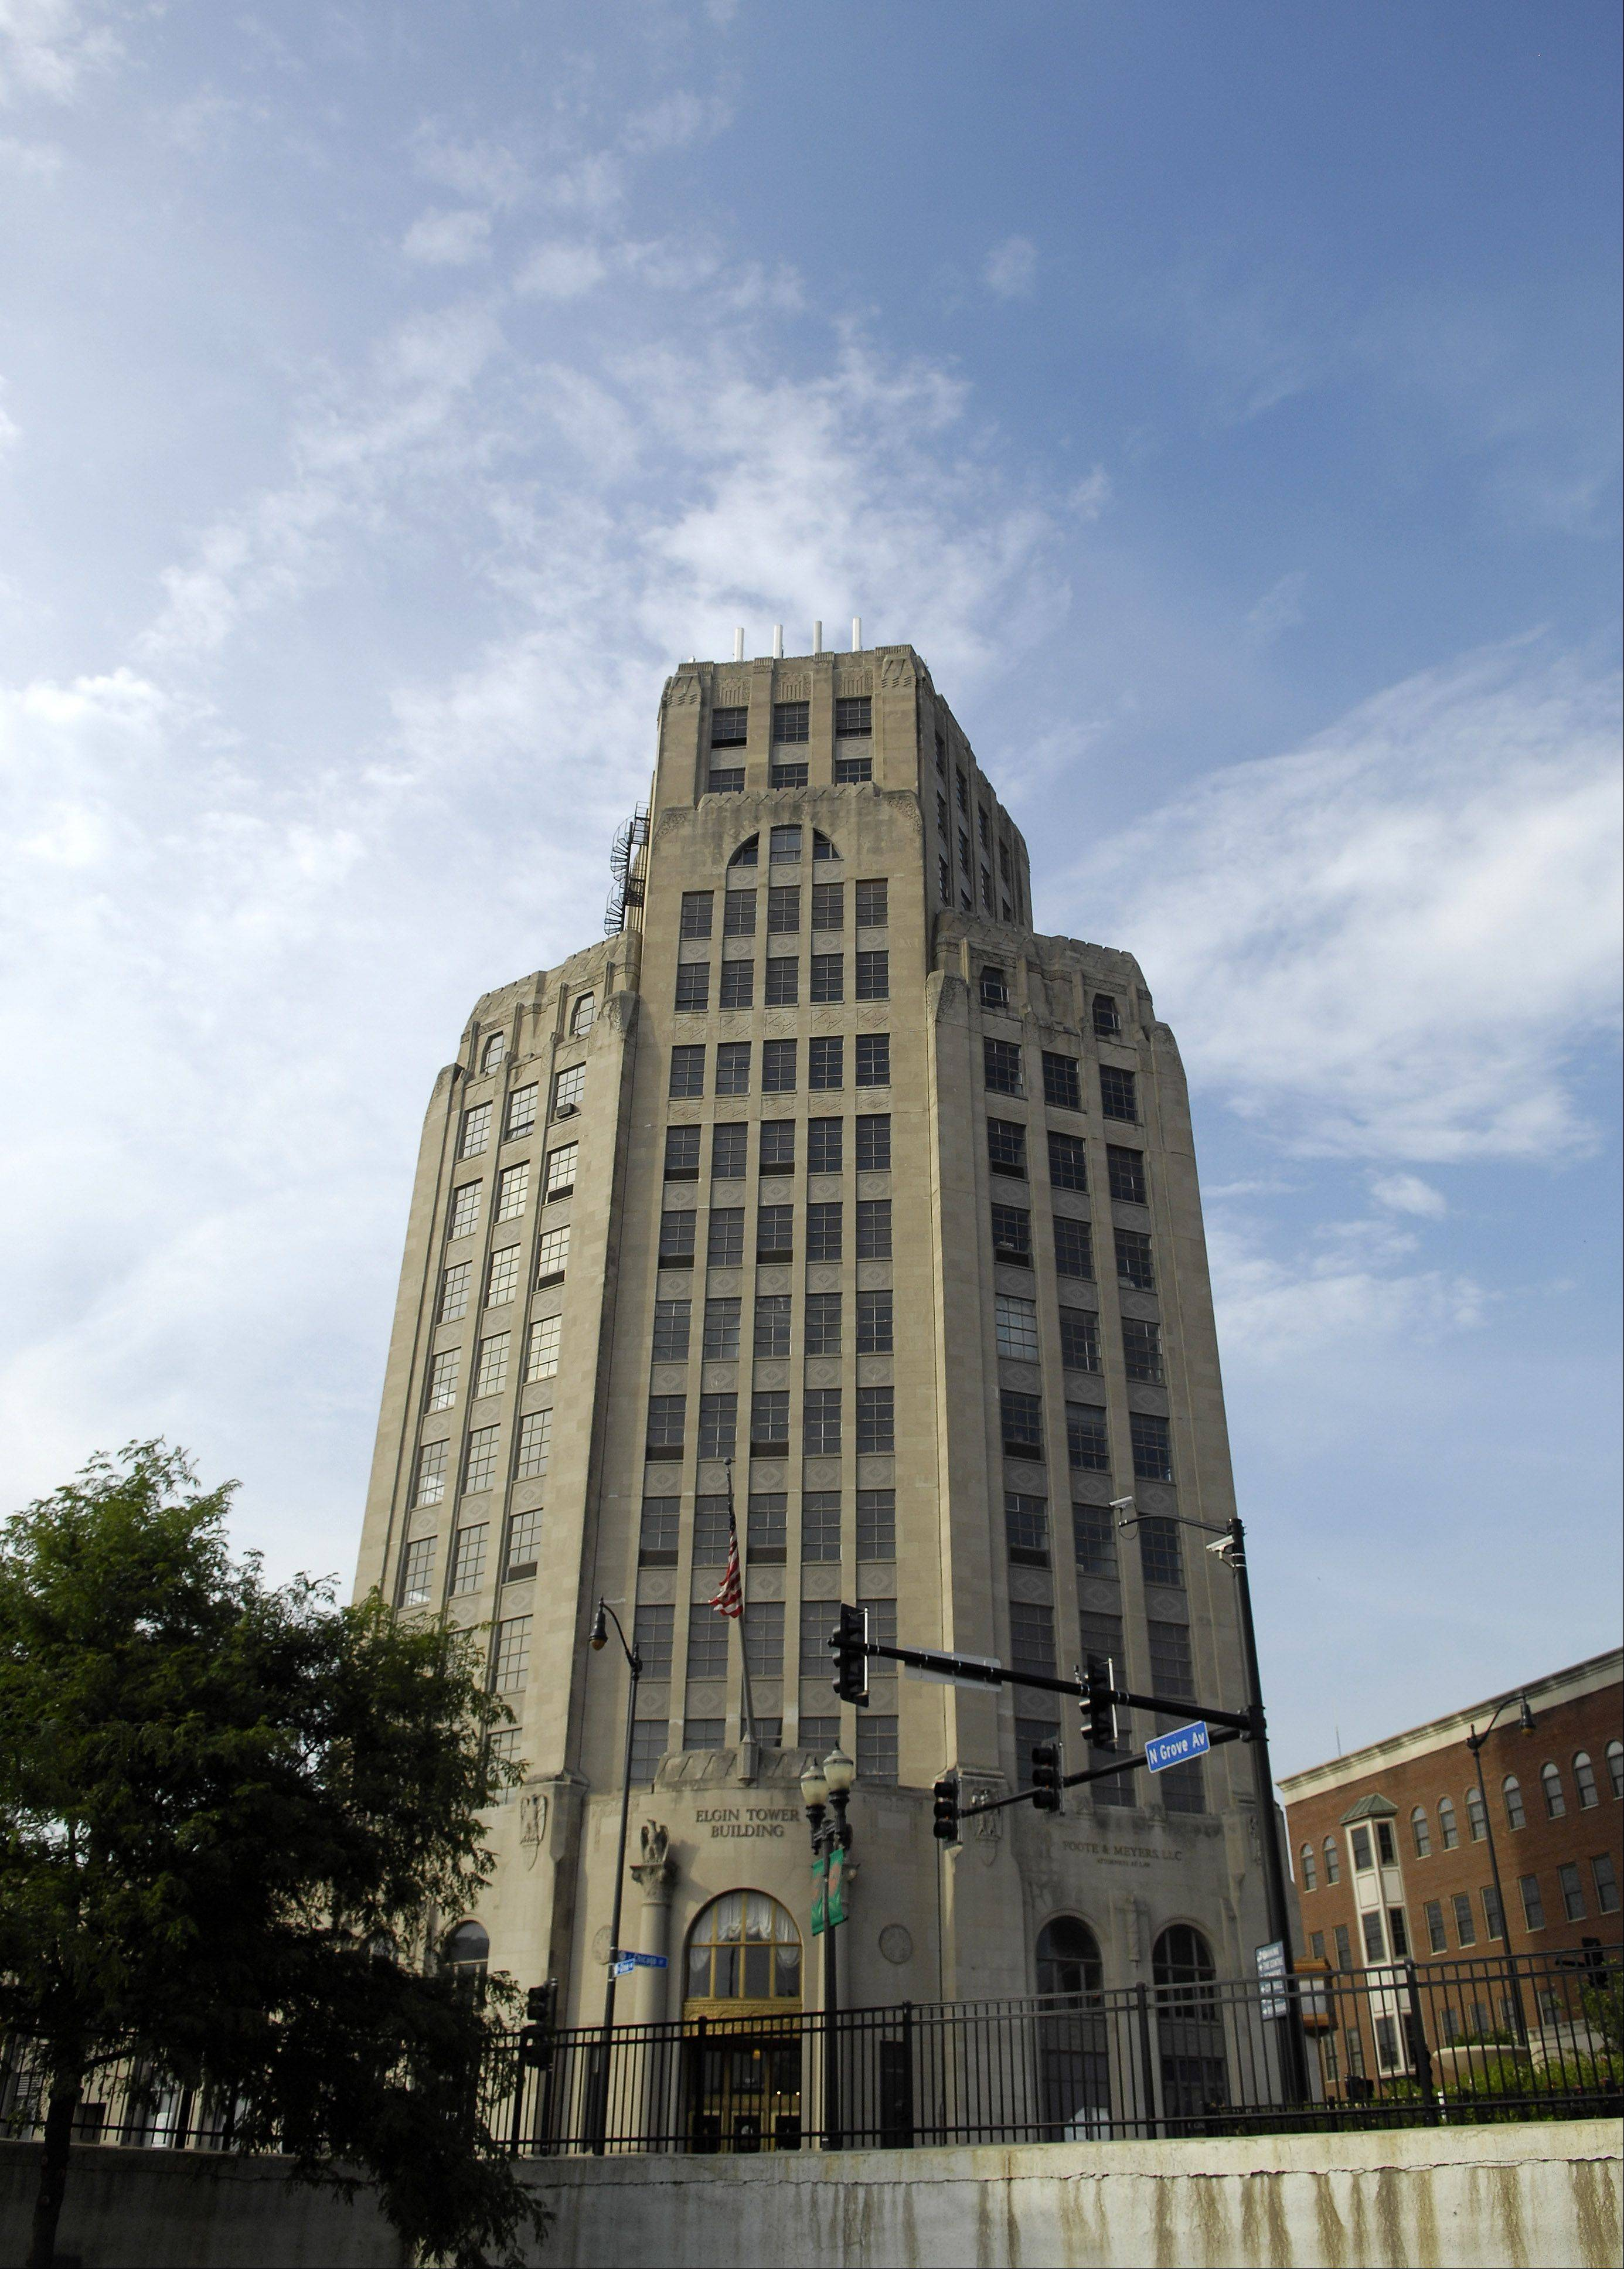 DAILY HERALD ARCHIVE/Rick WestThe Elgin Tower Building might be purchased by a Wisconsin-based company that would gut and restore it, city officials said.